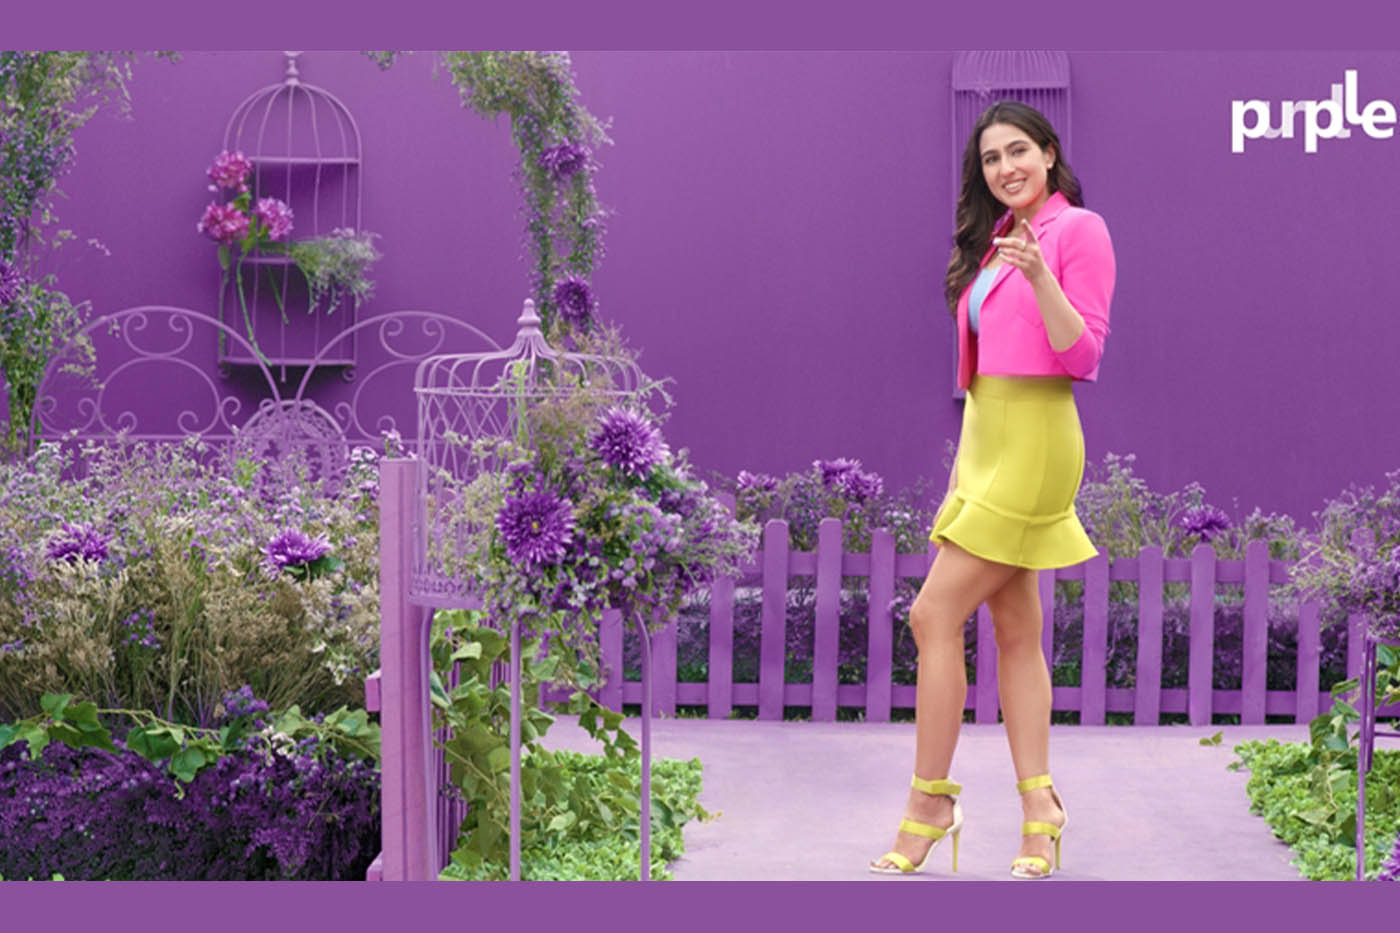 Purplle.com signs Sara Ali Khan as the brand ambassador